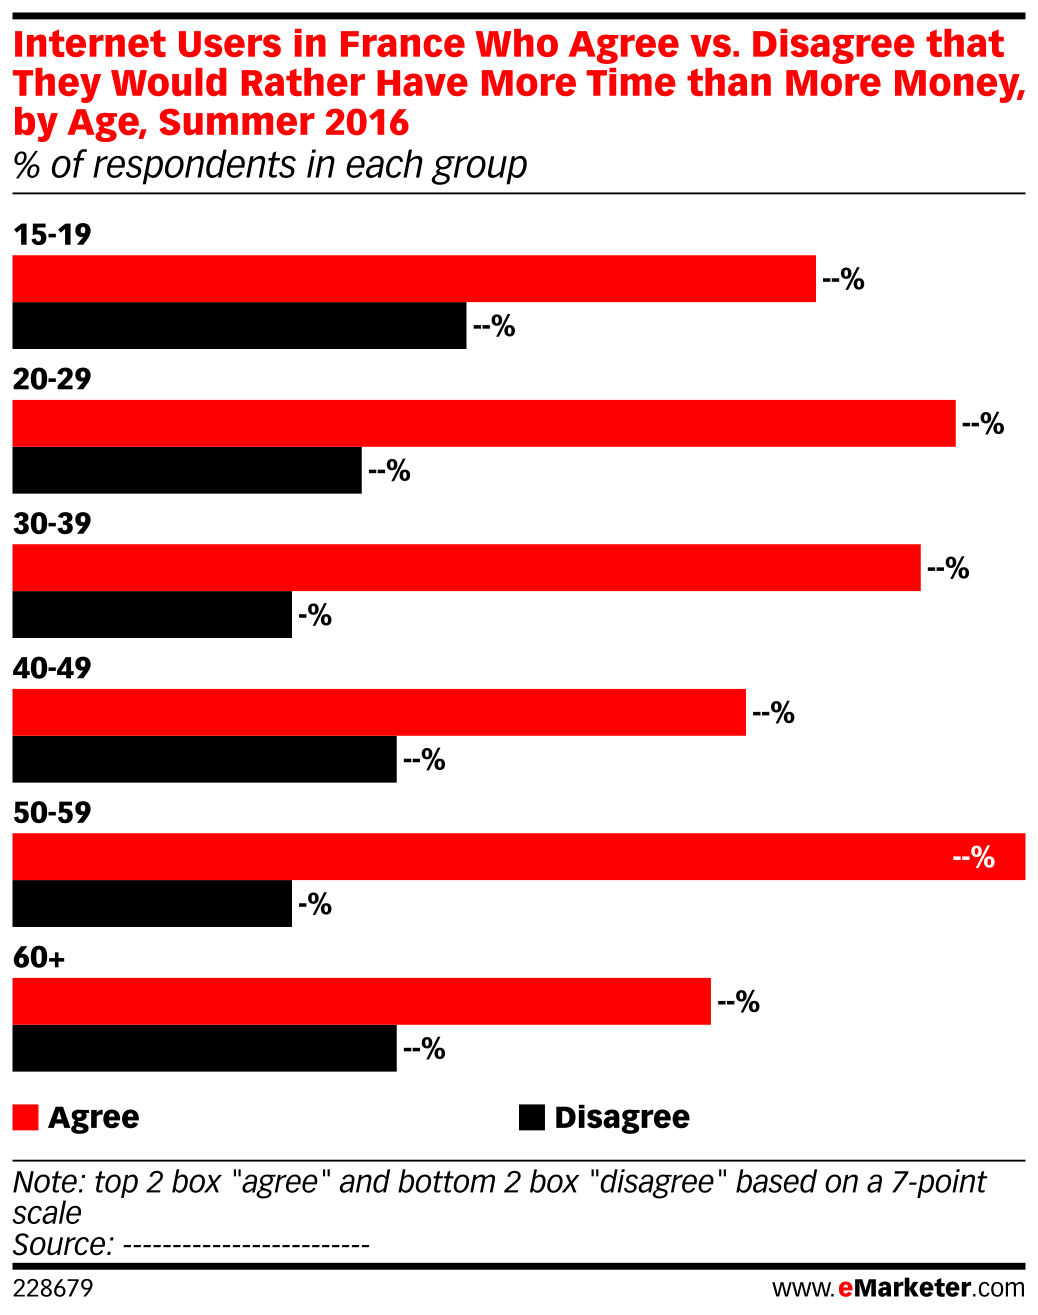 Internet Users in France Who Agree vs. Disagree that They Would Rather Have More Time than More Money, by Age, Summer 2016 (% of respondents in each group)